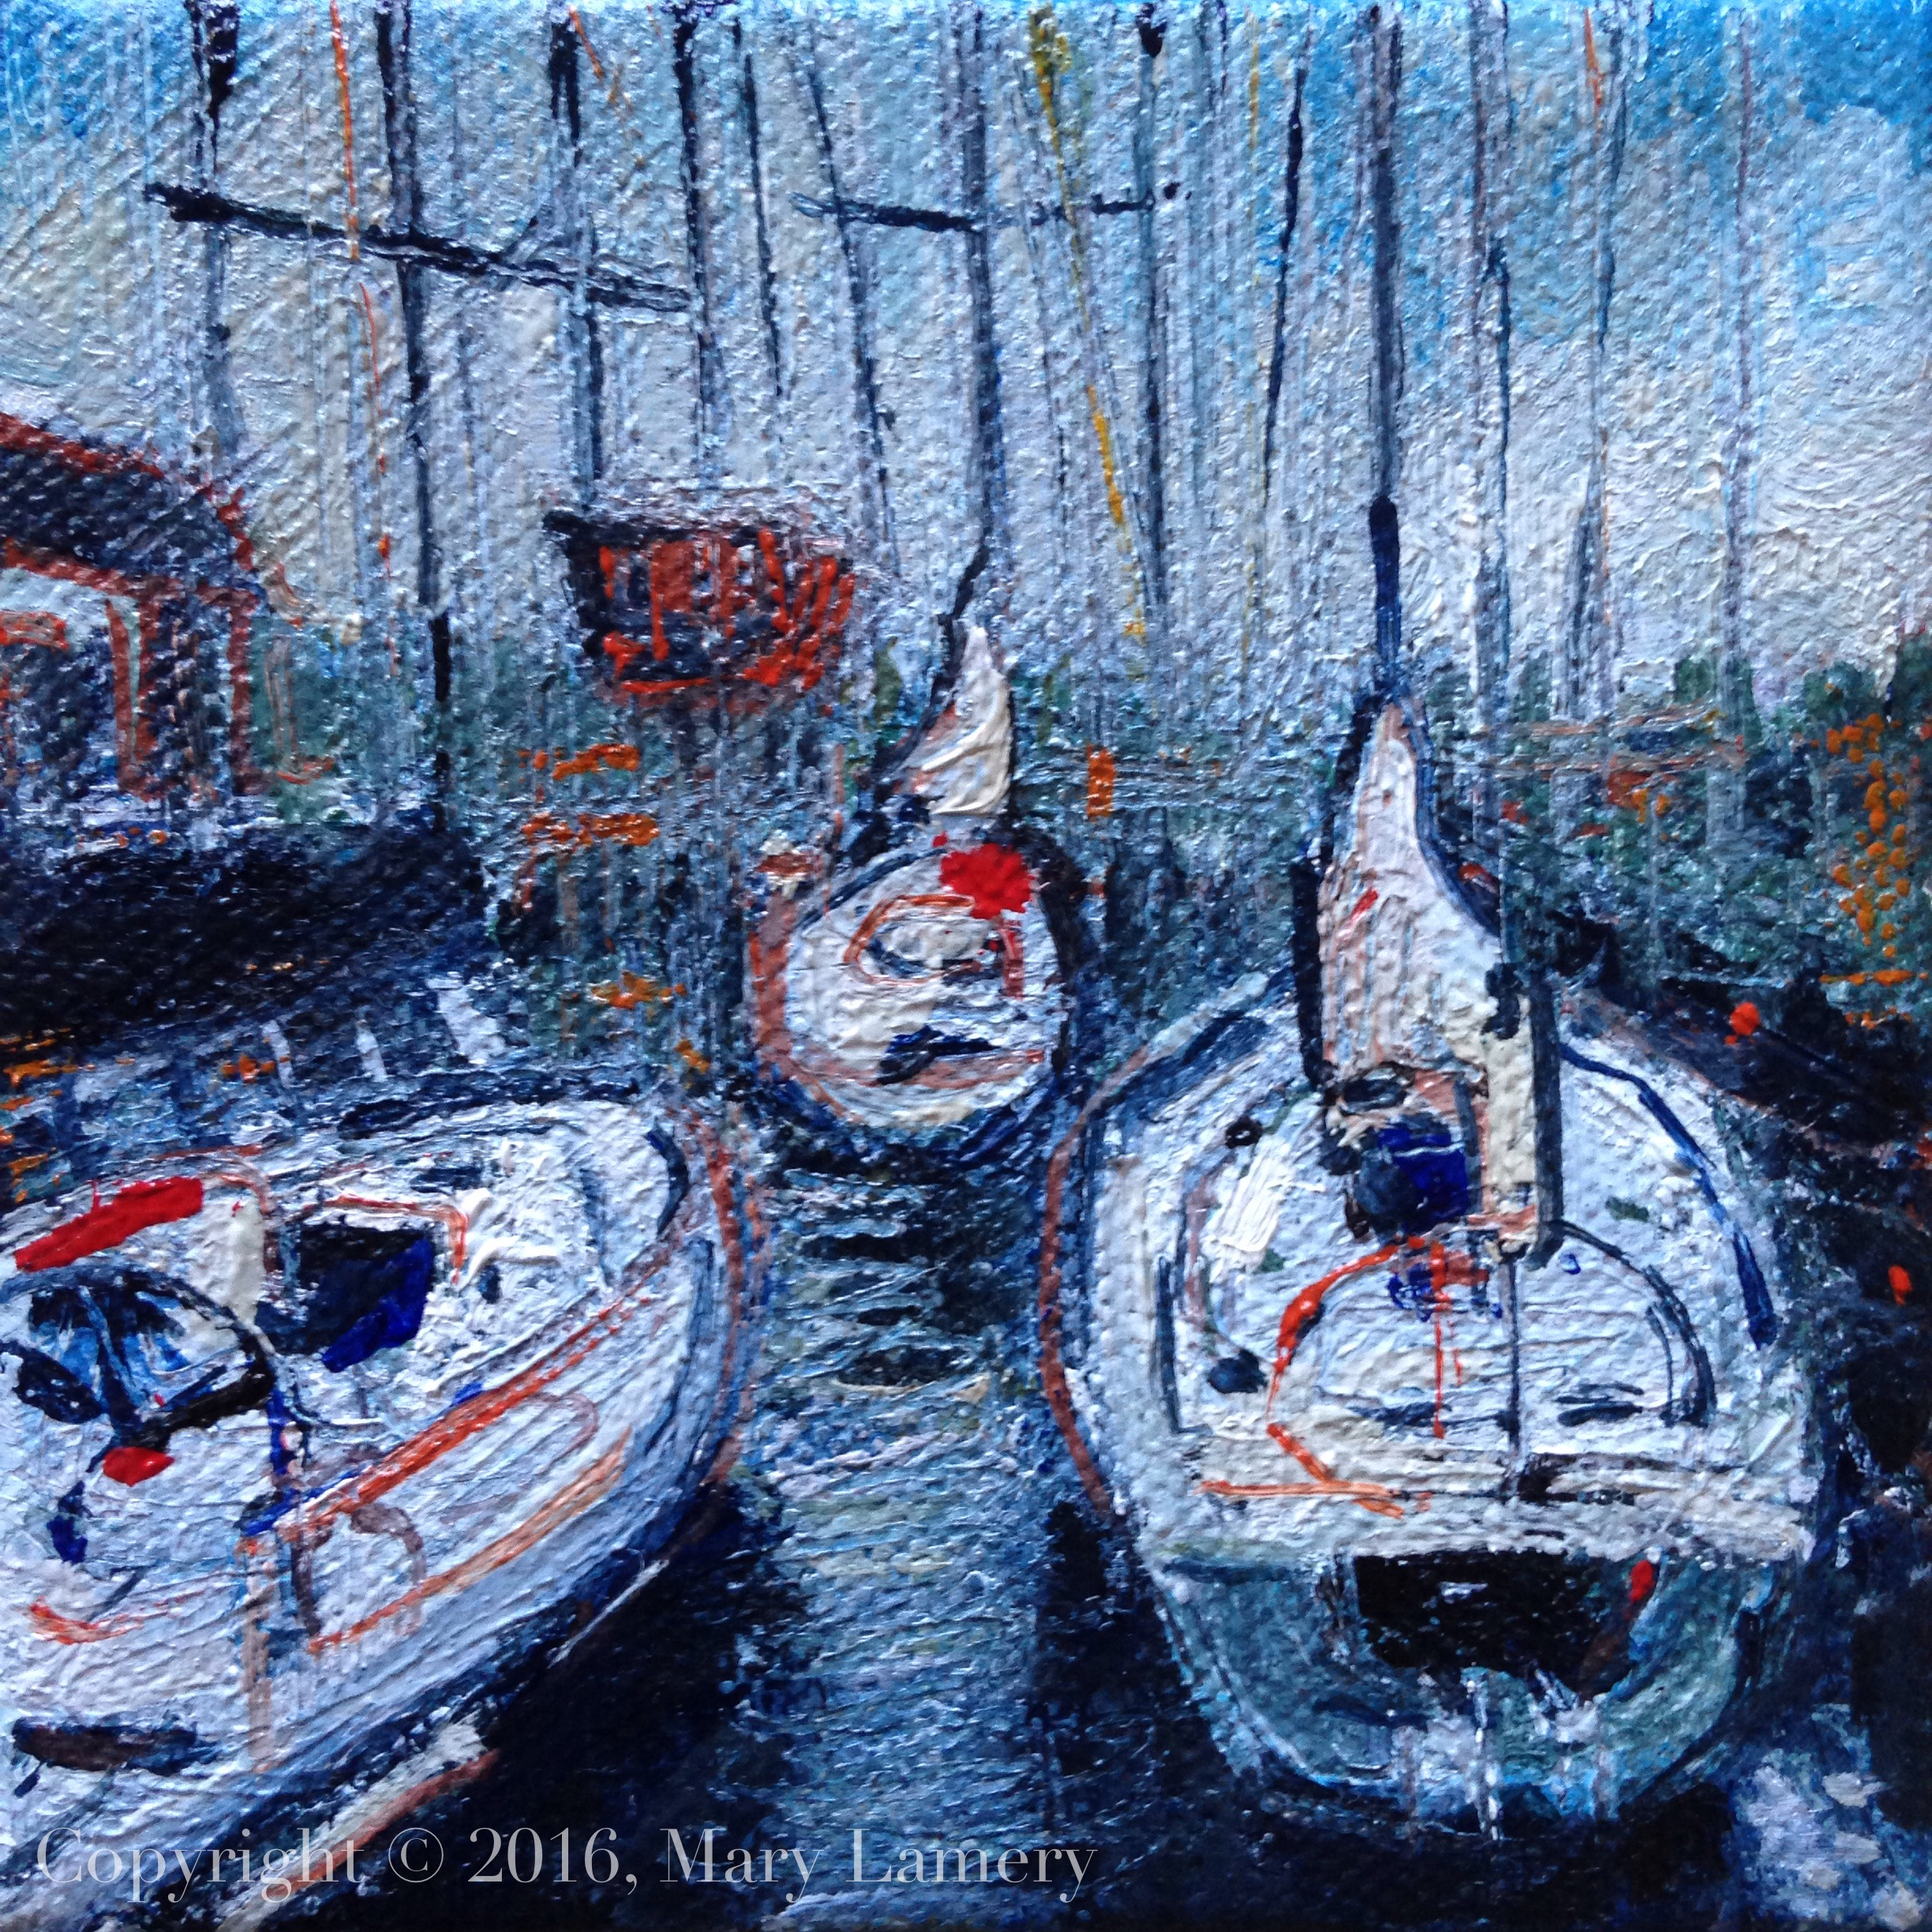 Sailboats queued up in the locks.jpg